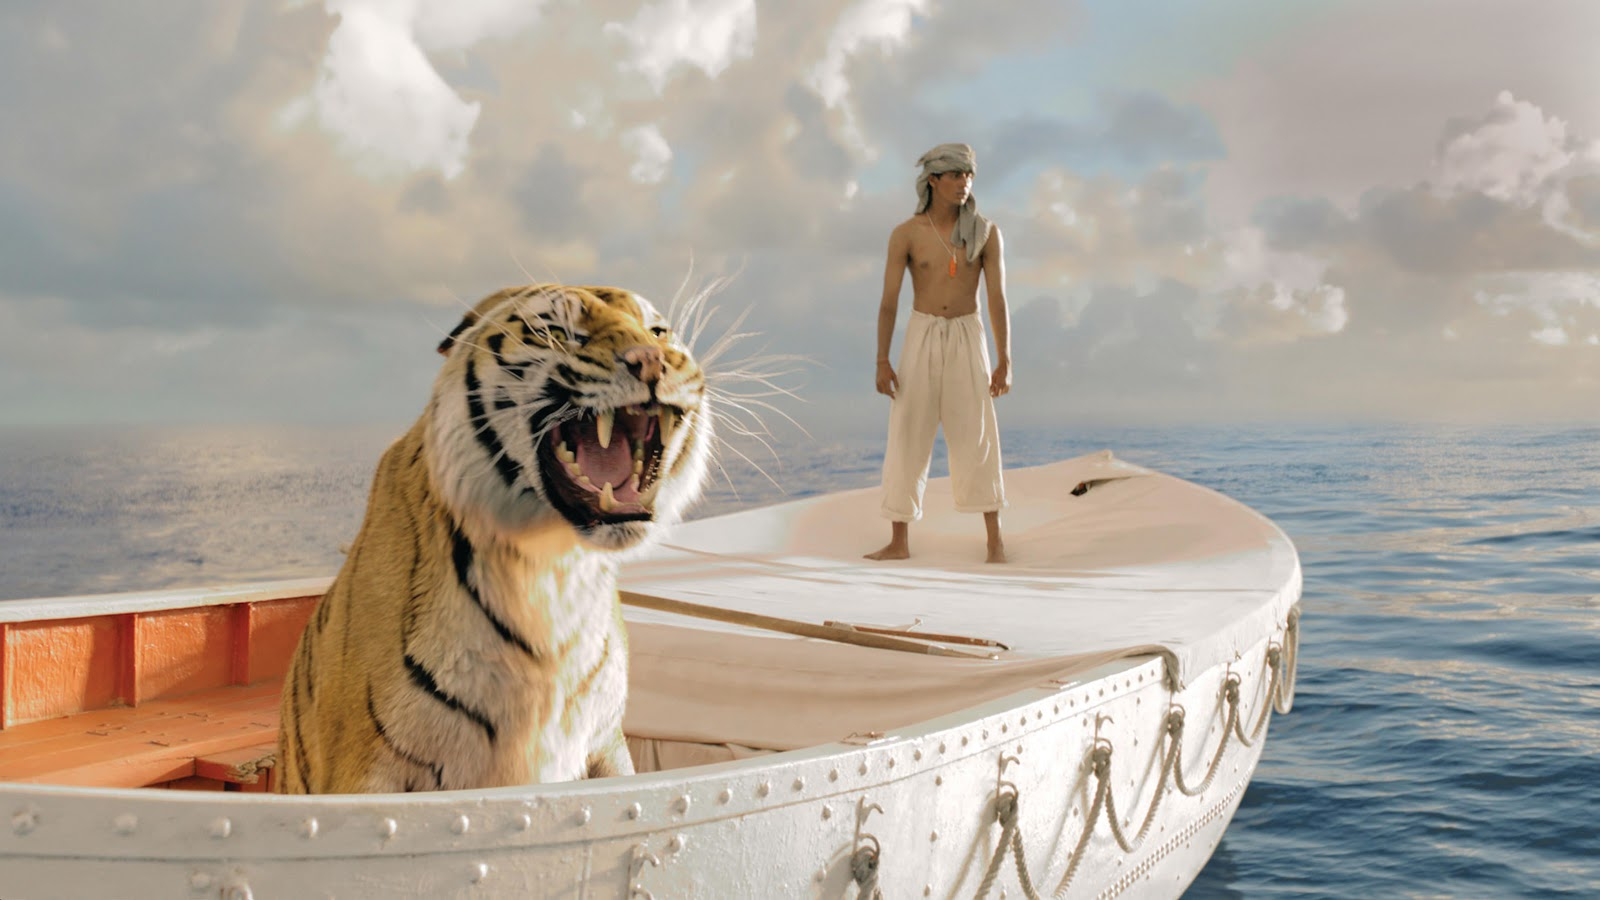 the life of pi s human nature